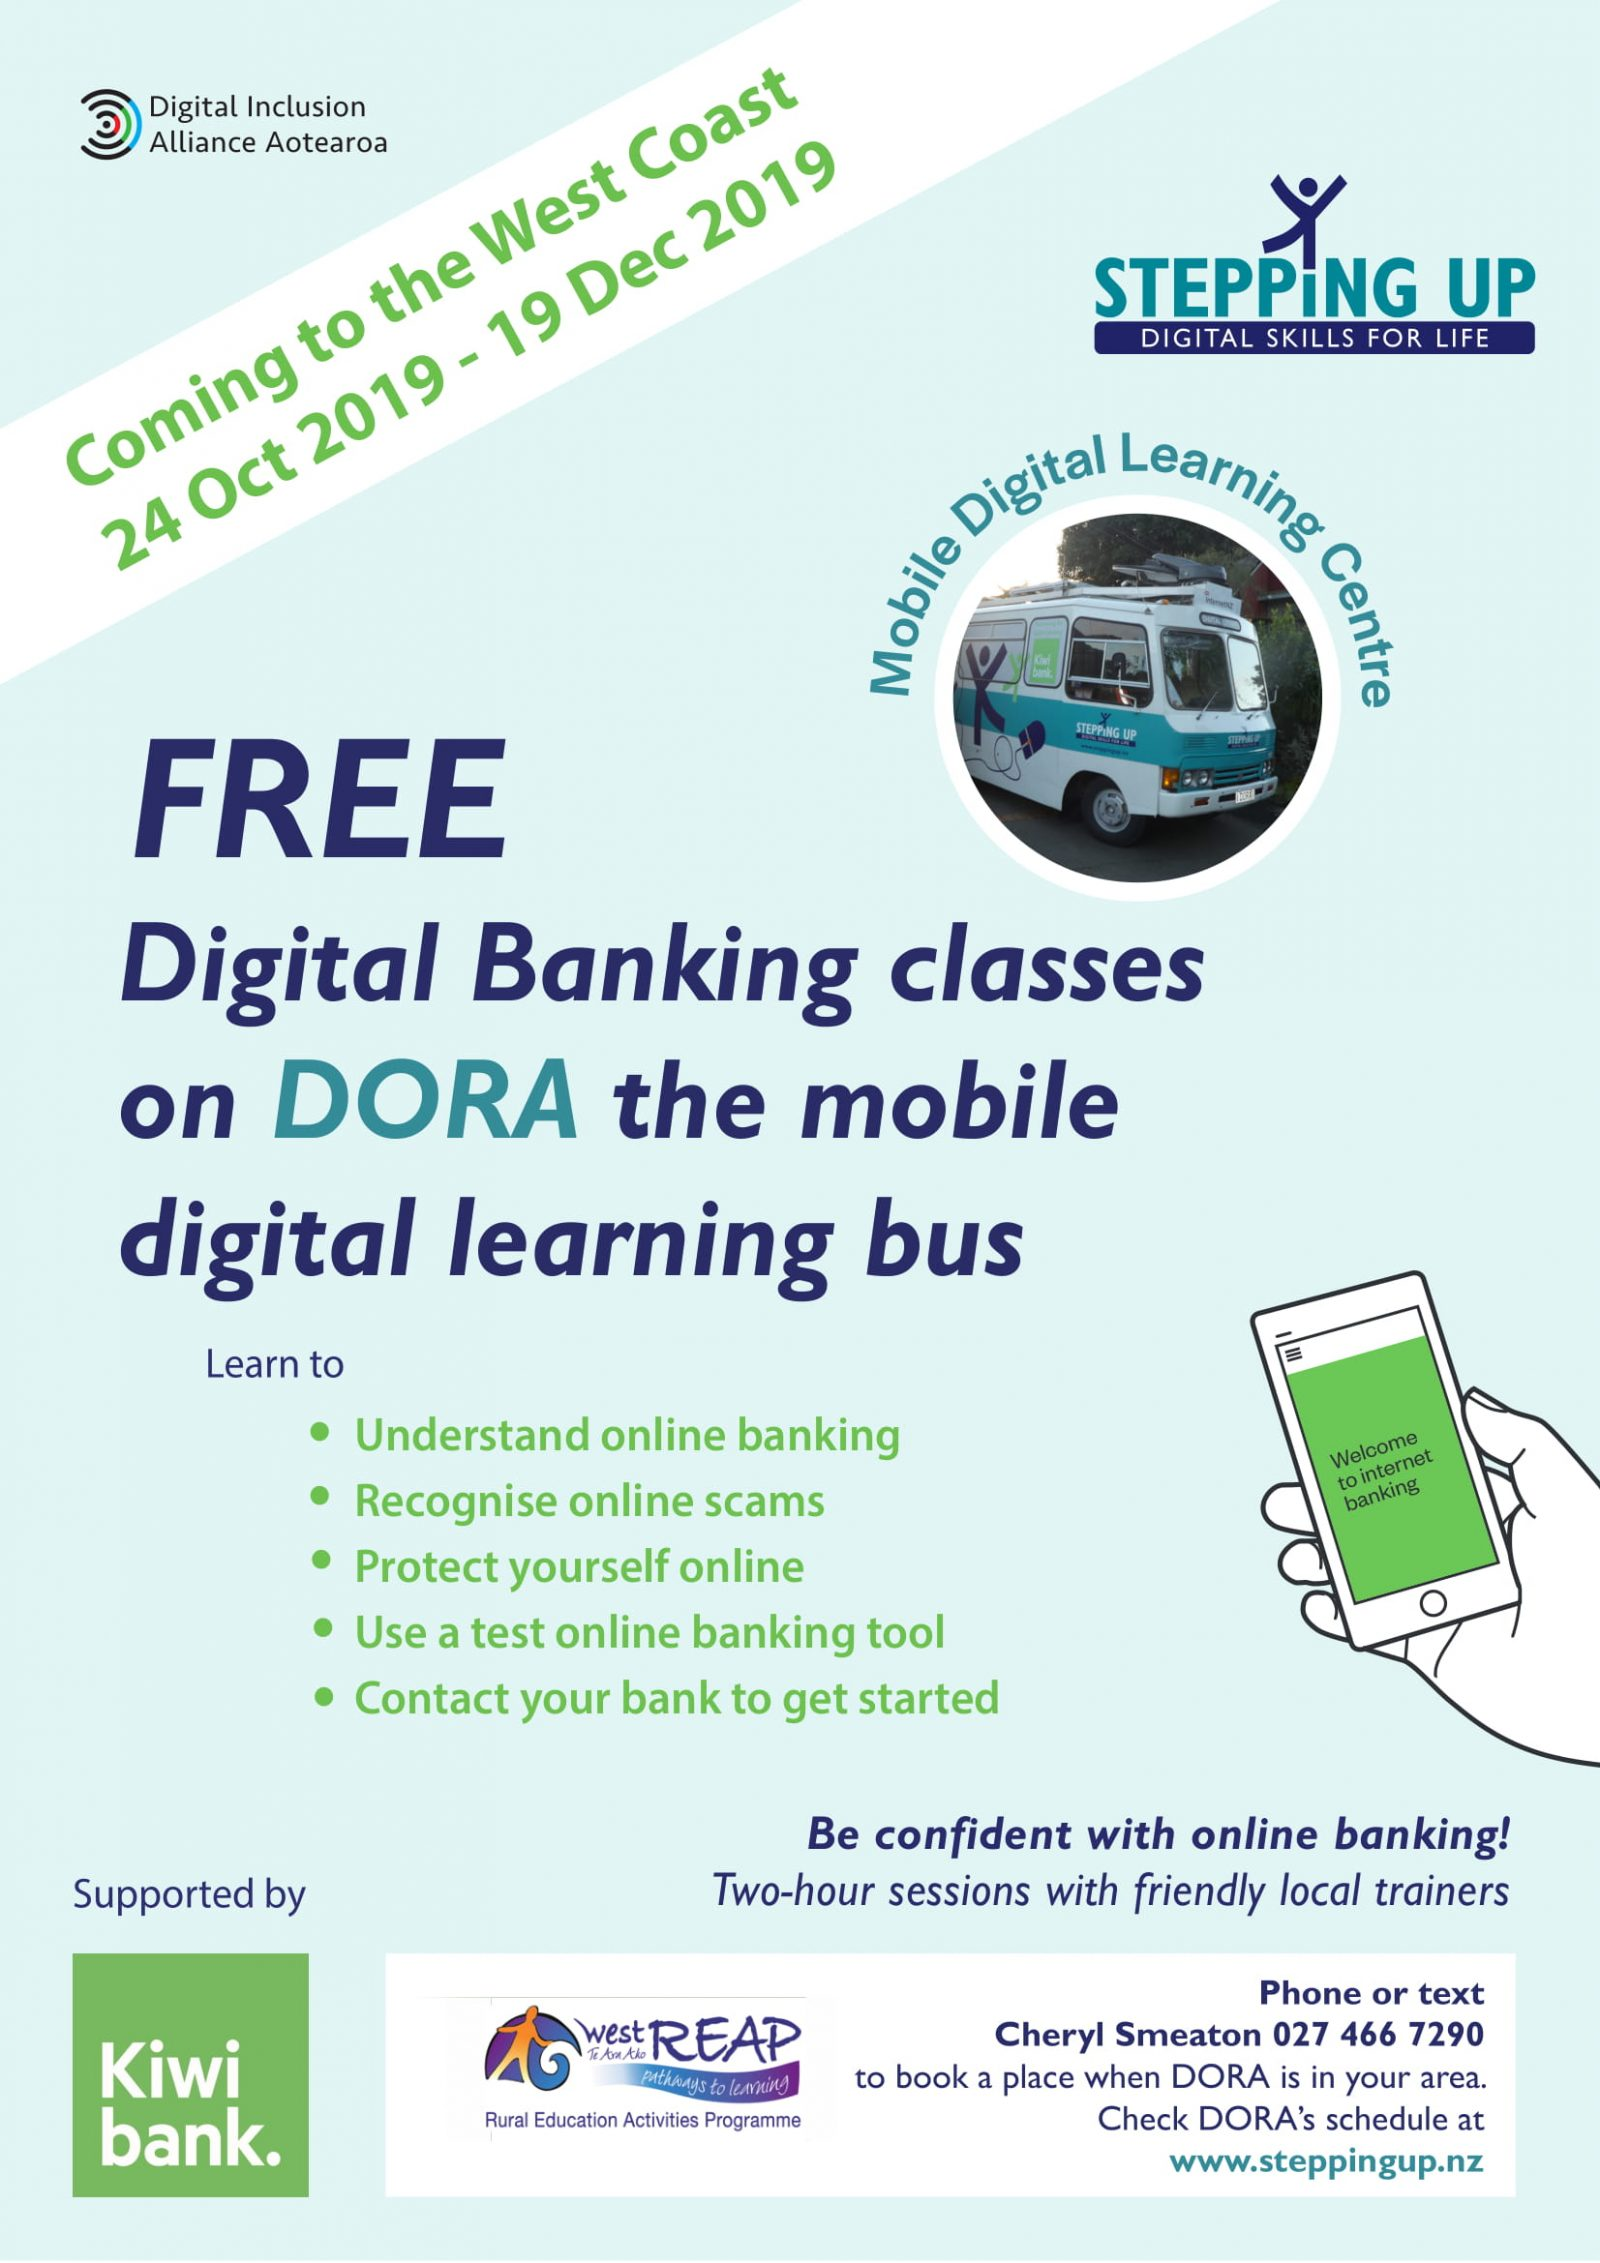 FREE digital banking classes